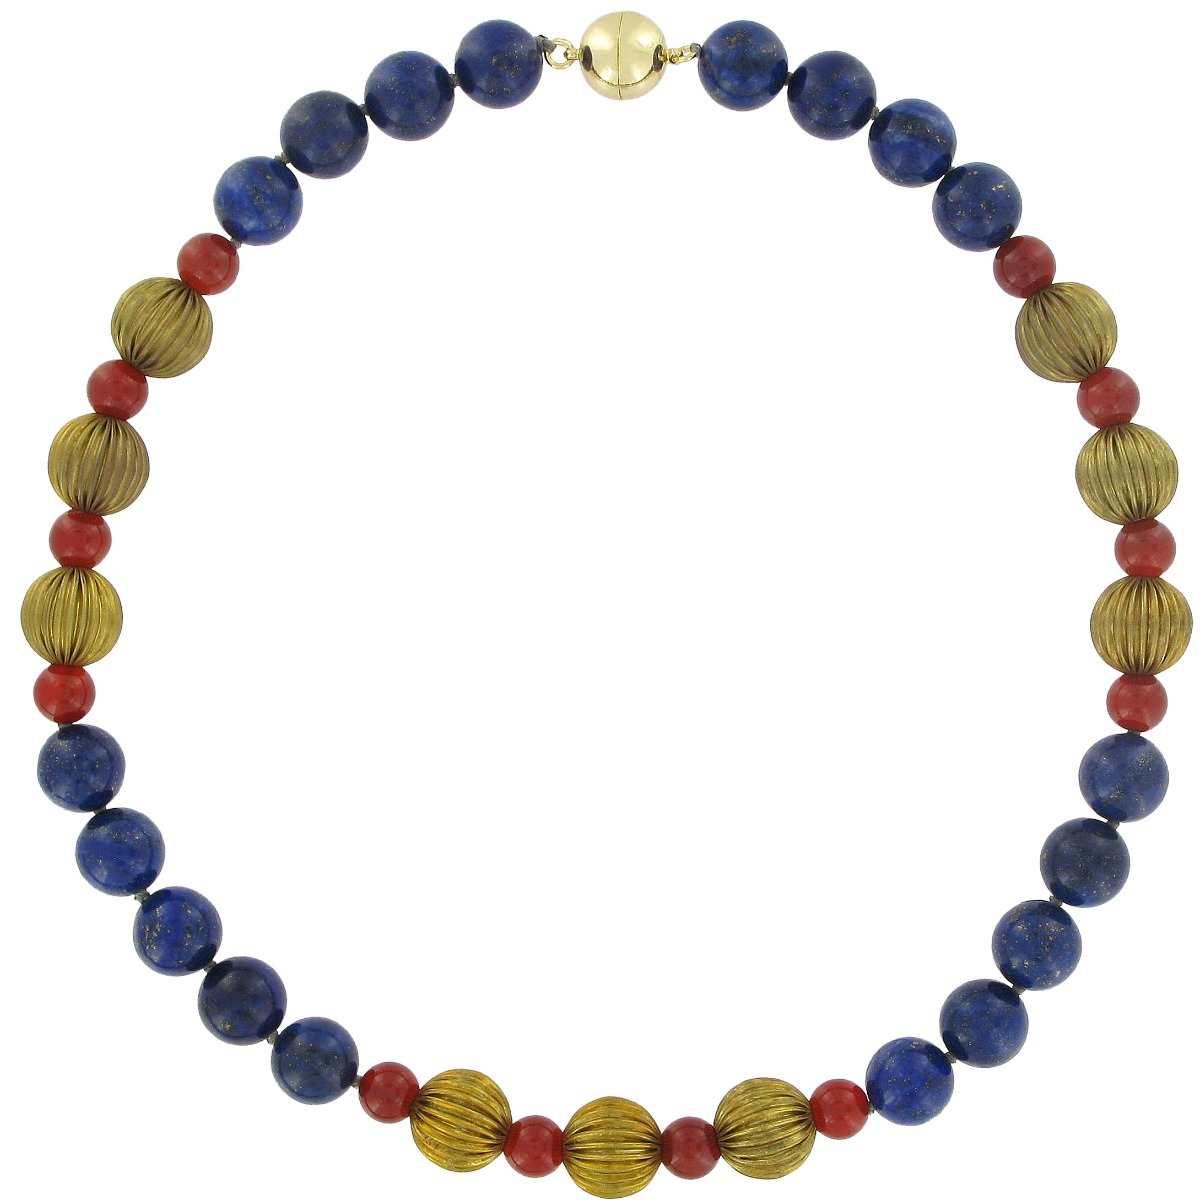 Ribbed lapis lazuli and agate bead necklace